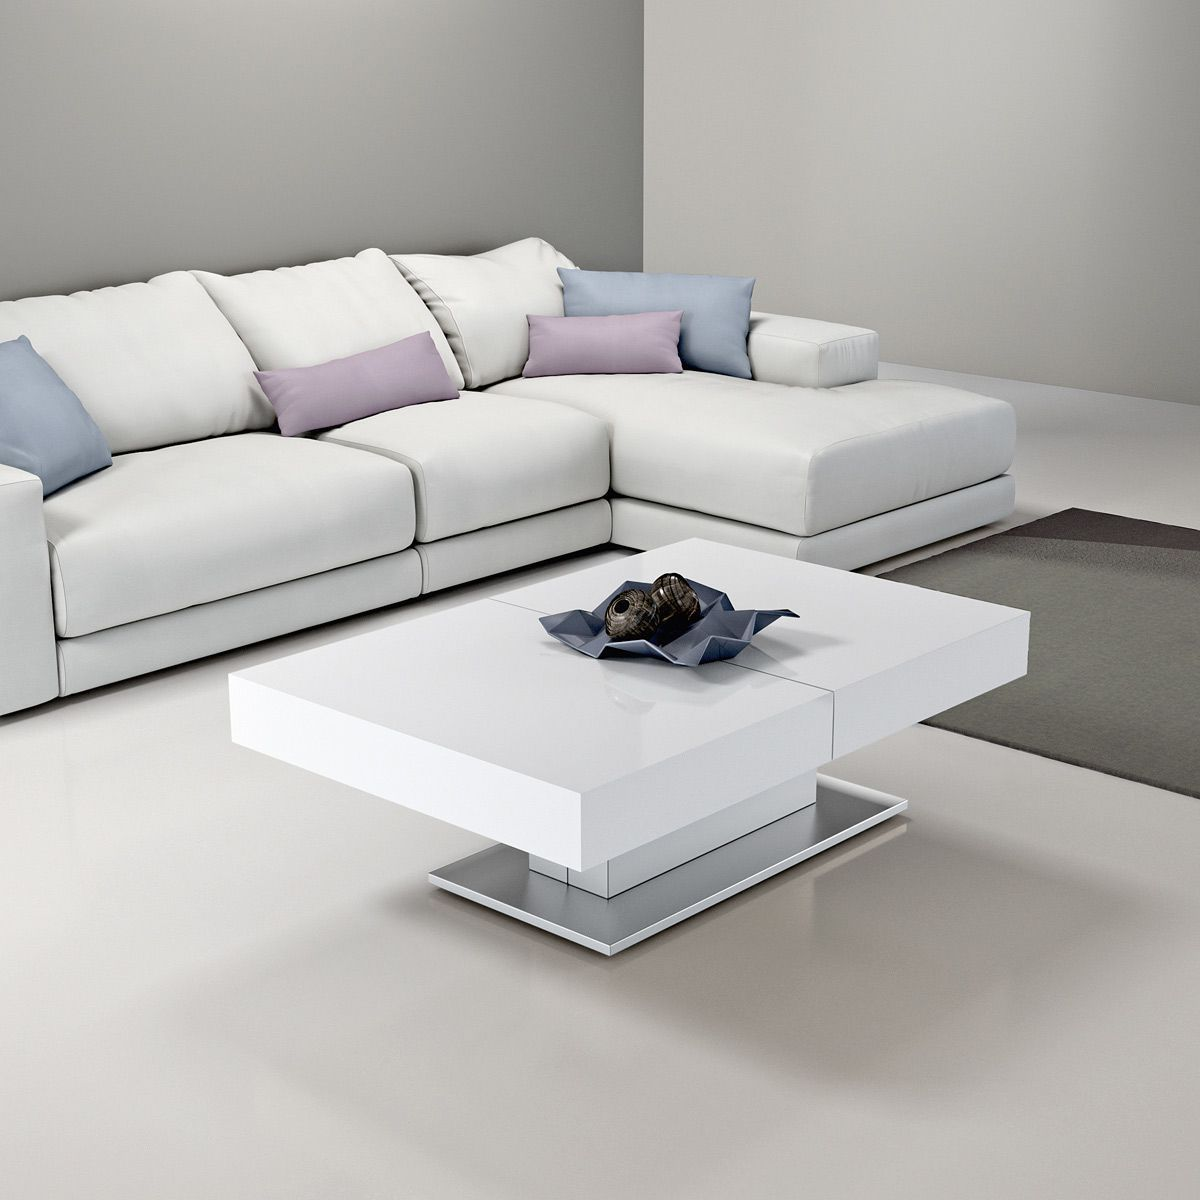 Table Basse Modulable Design Ares Fold Inox Zendart La Redoute Mobile Living Room Tv Coffee Table Centerpieces Table